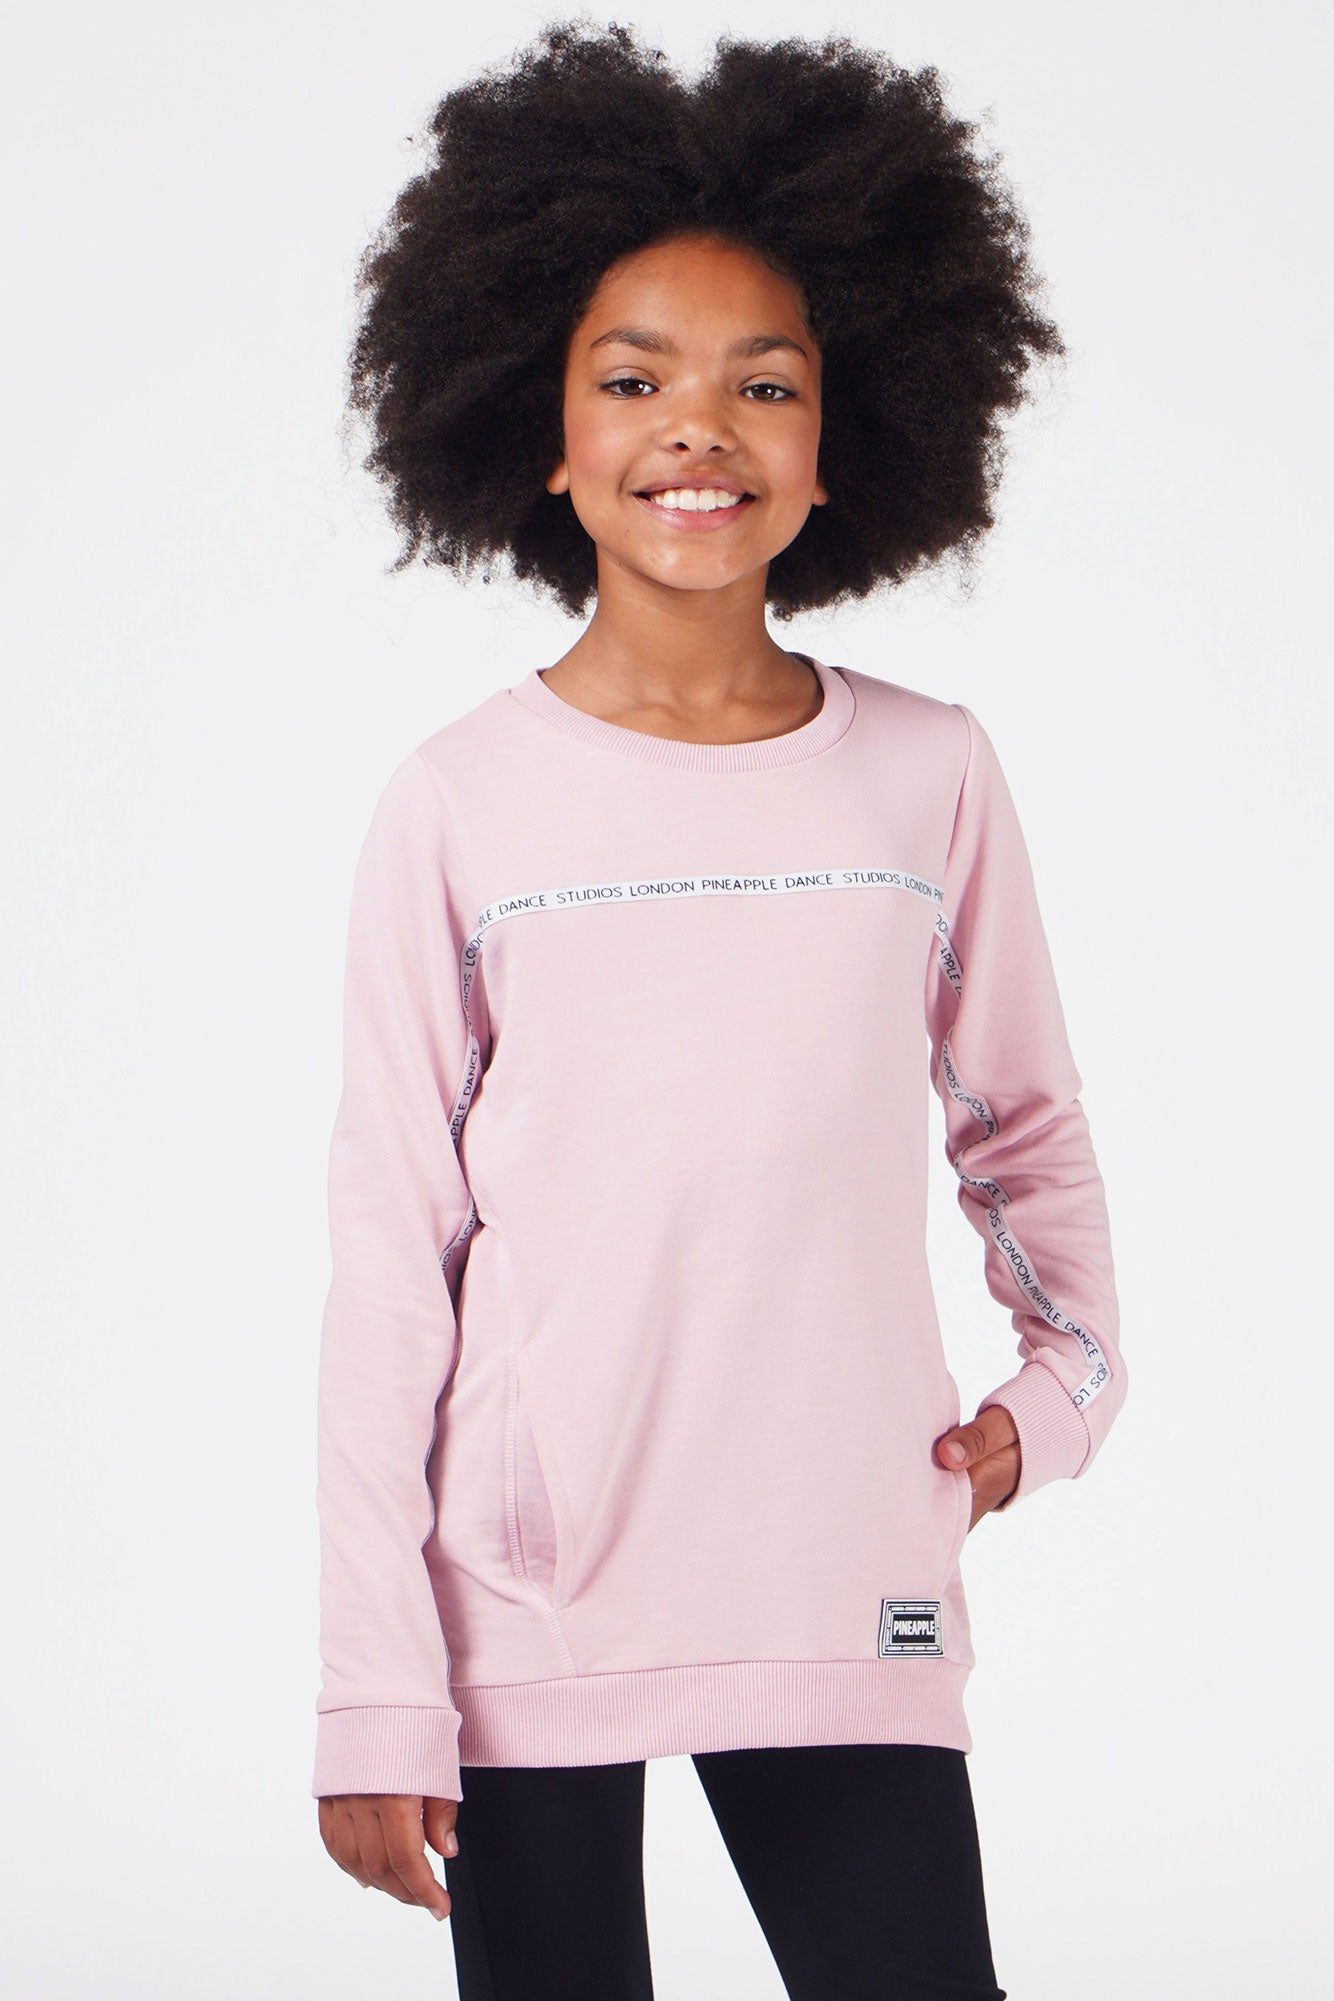 Girl wearing Pink Pineapple Tape Monster Sweater